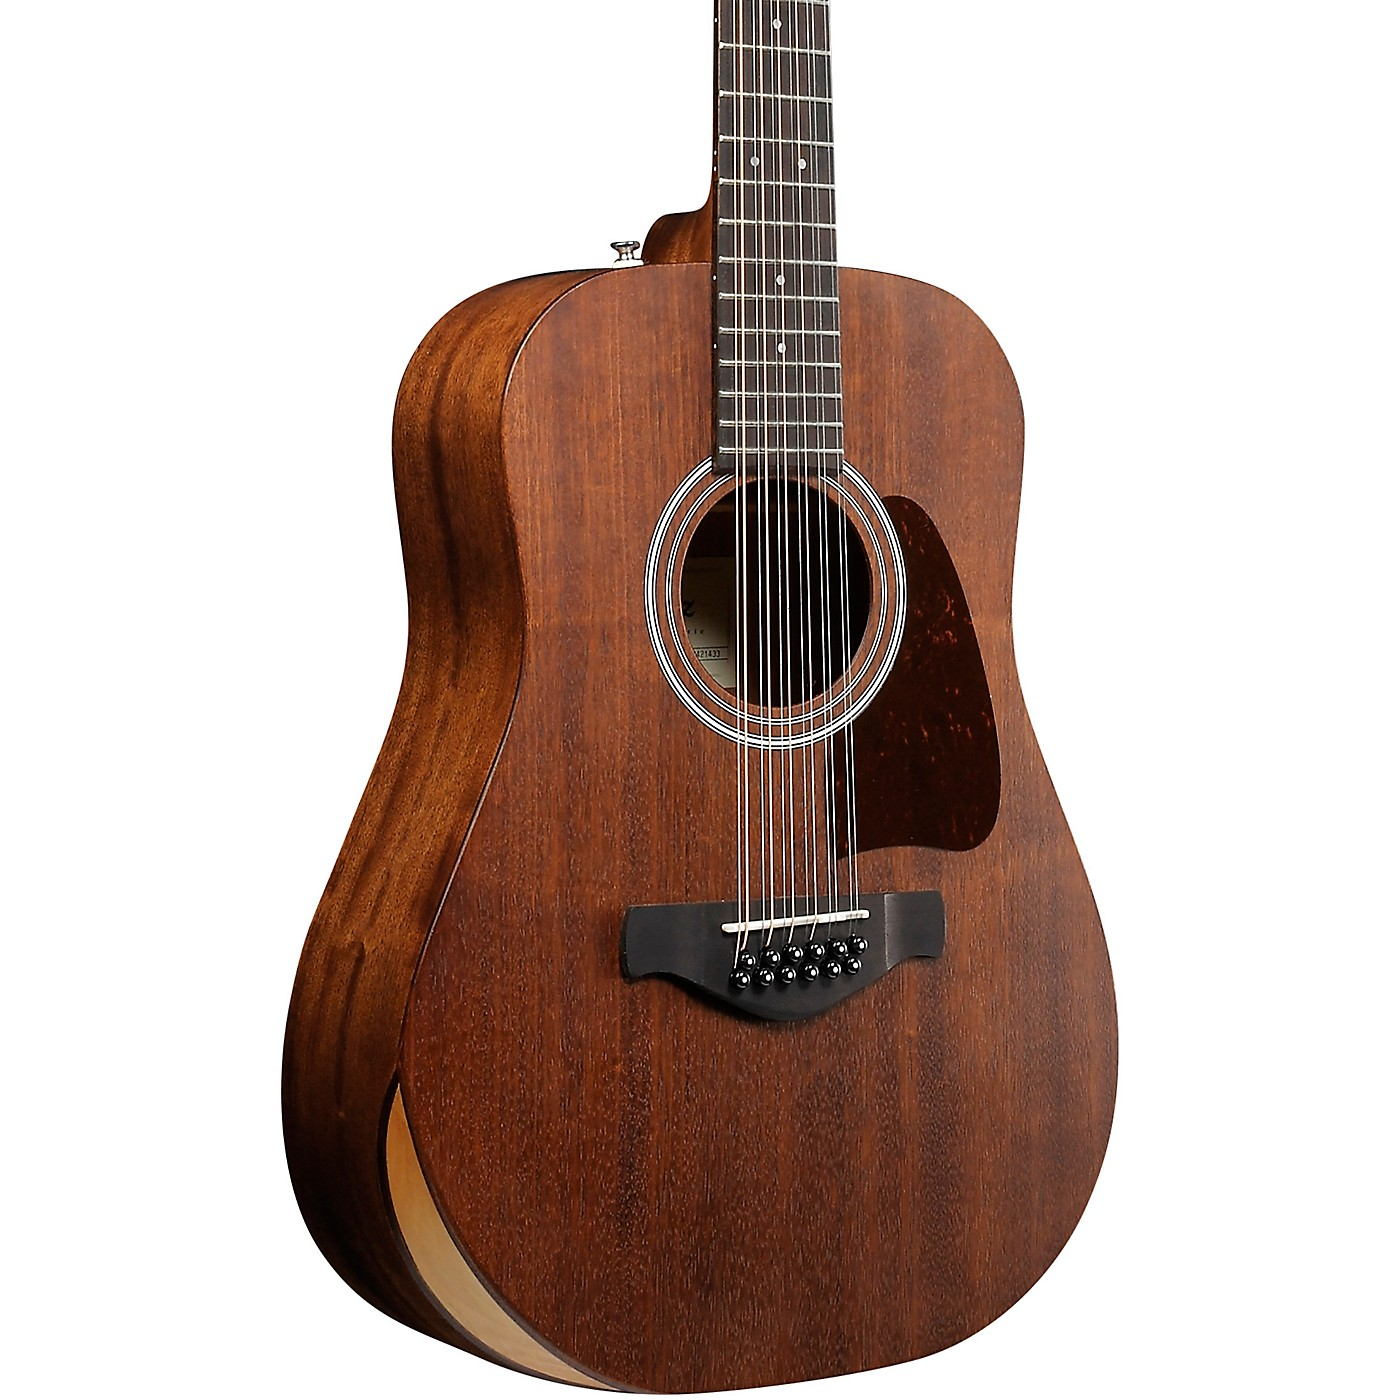 Ibanez AW5412JR Artwood 3/4 Dreadnought Acoustic Guitar thumbnail